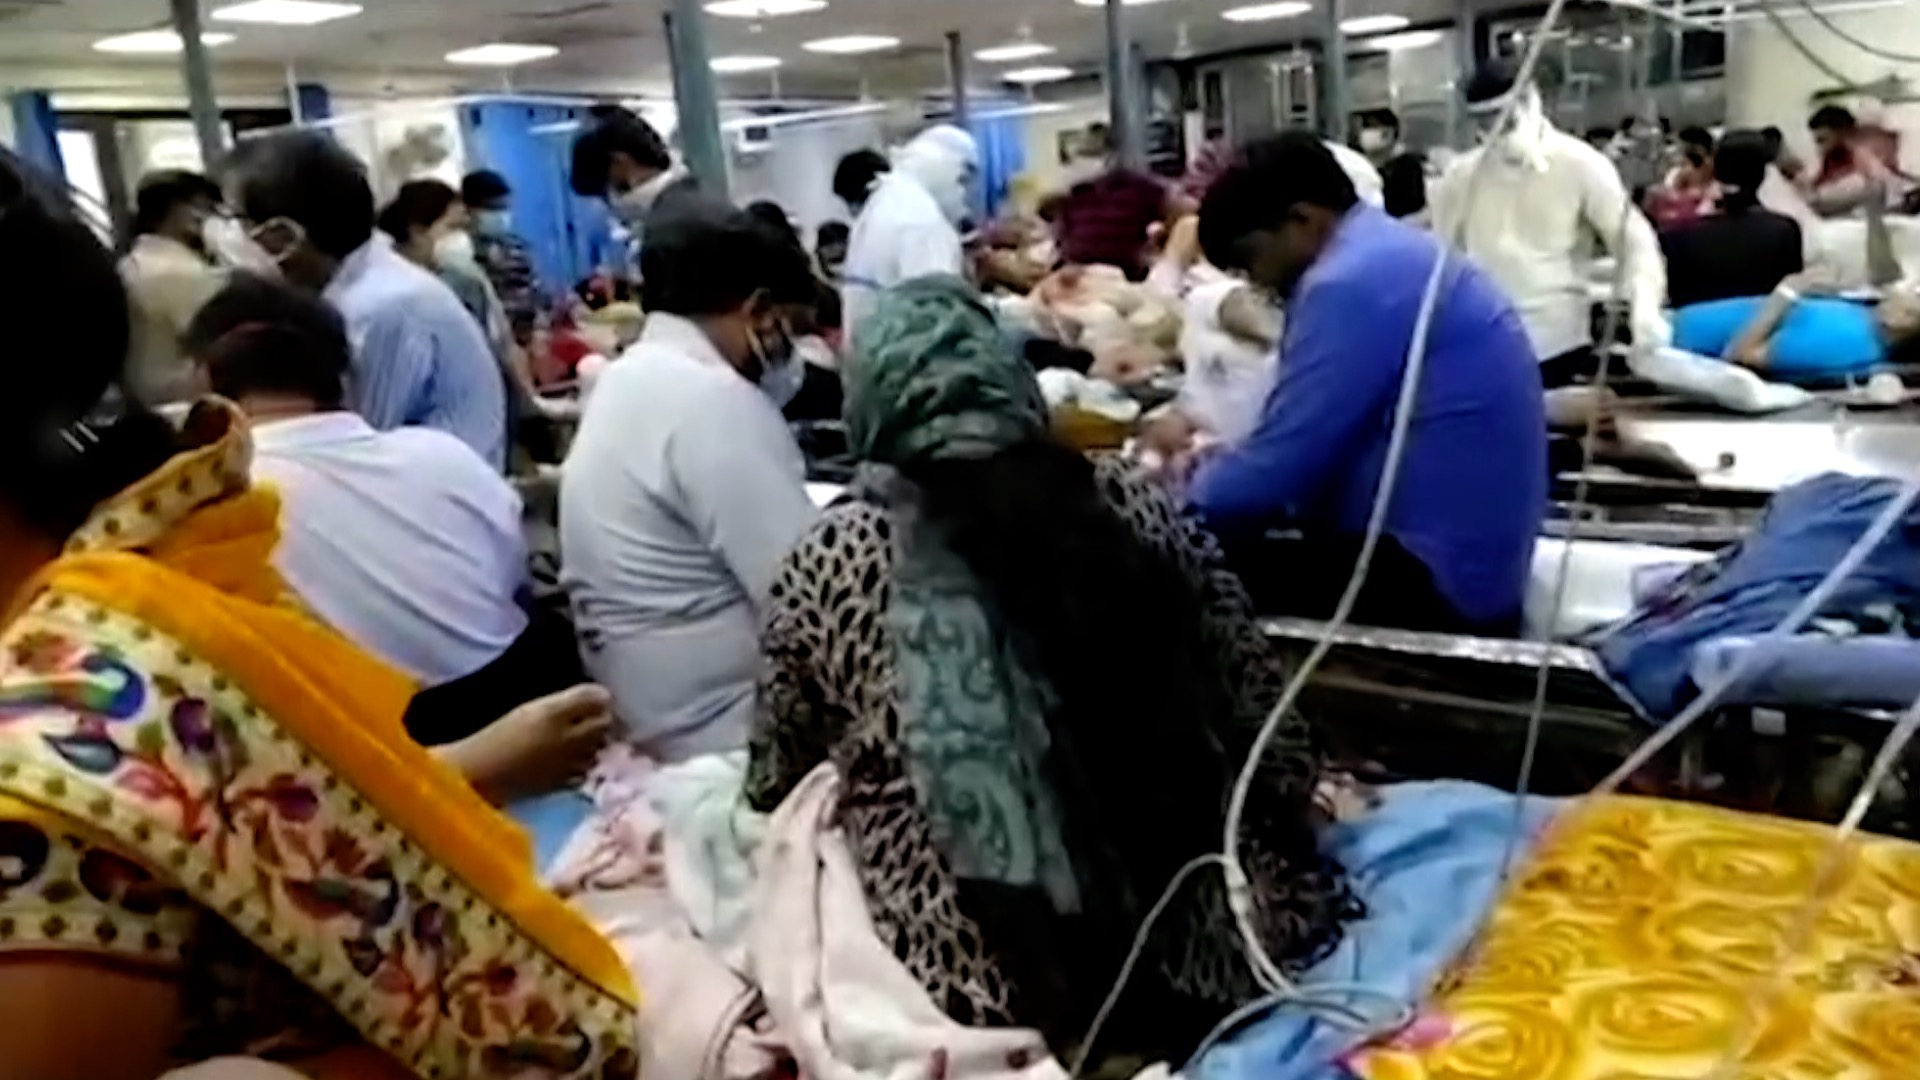 India's COVID-19 'tsunami' worsens as hospitals run out of beds - CGTN